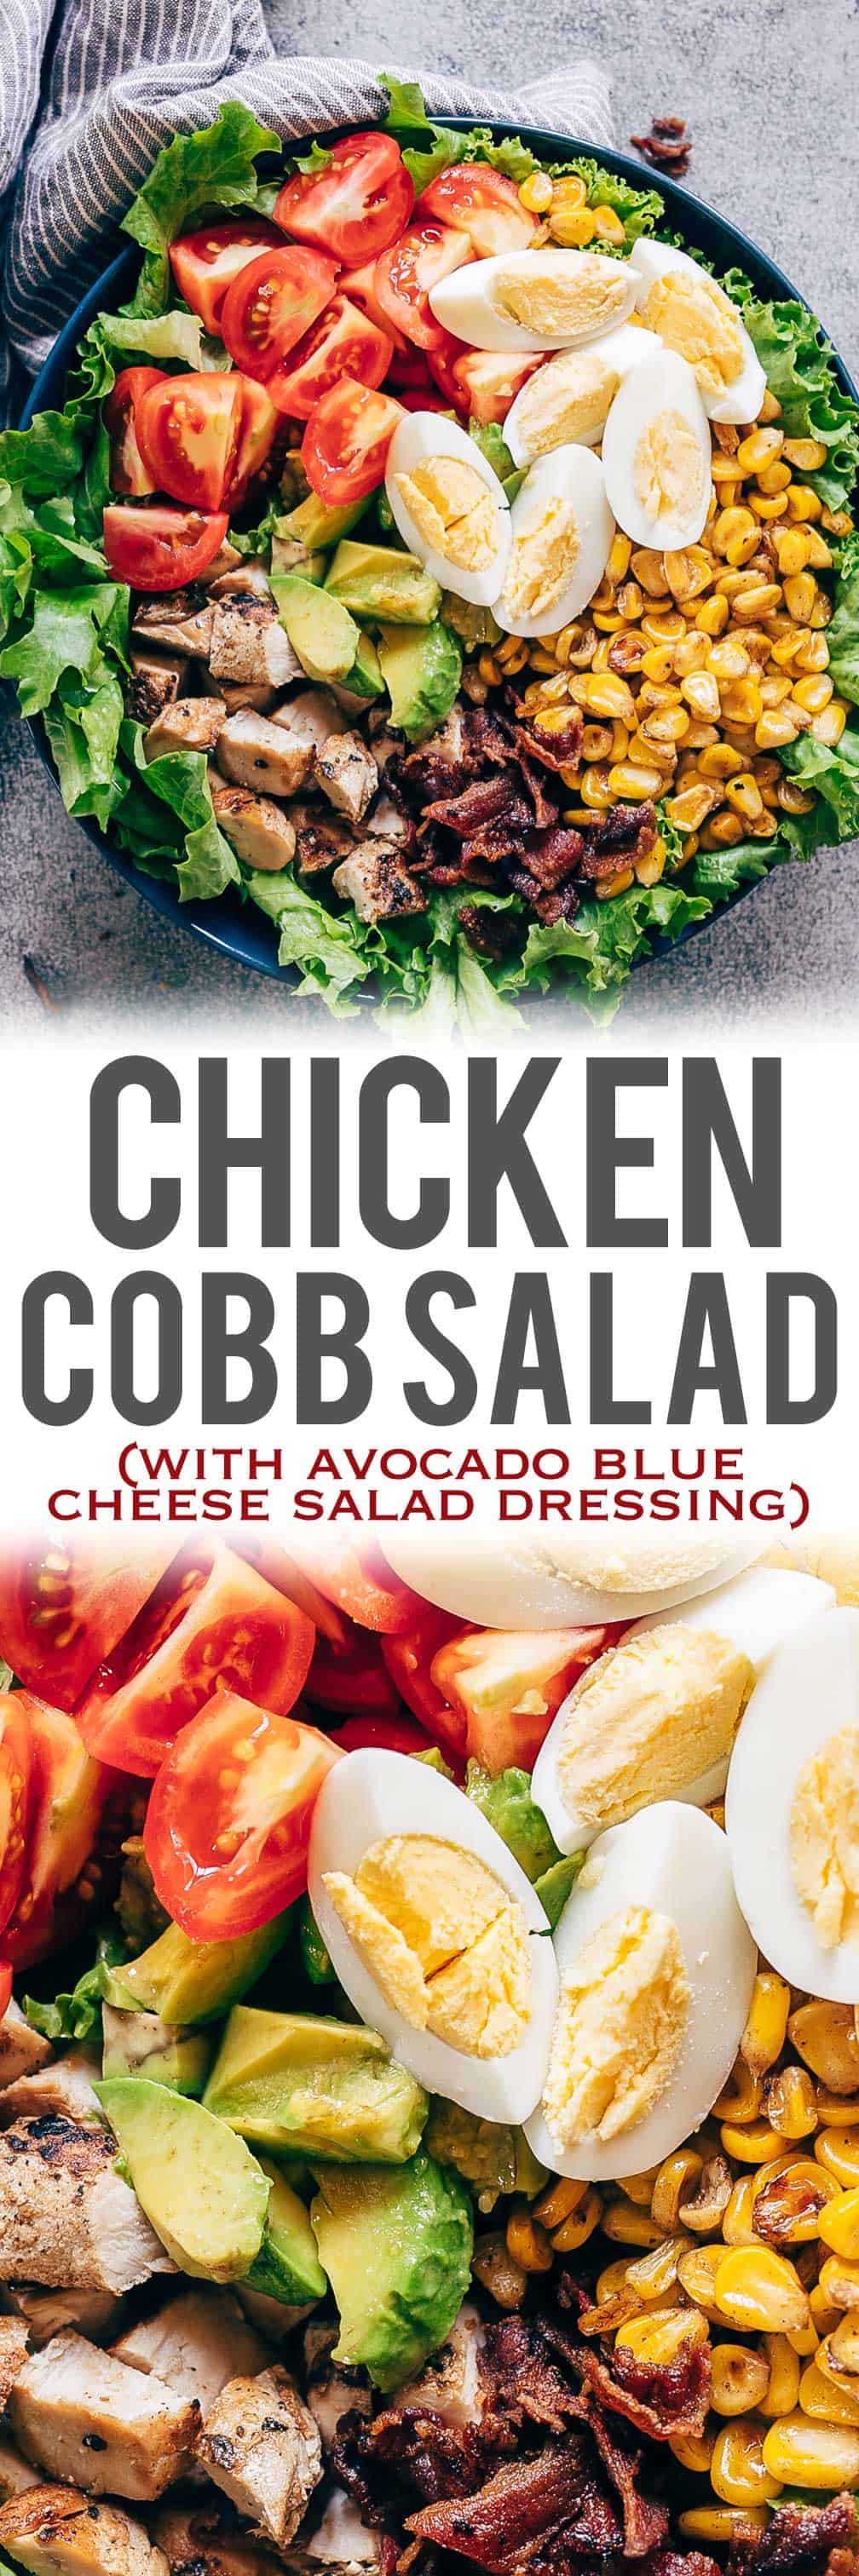 Chicken Cobb Salad with Avocado Blue Cheese Dressing